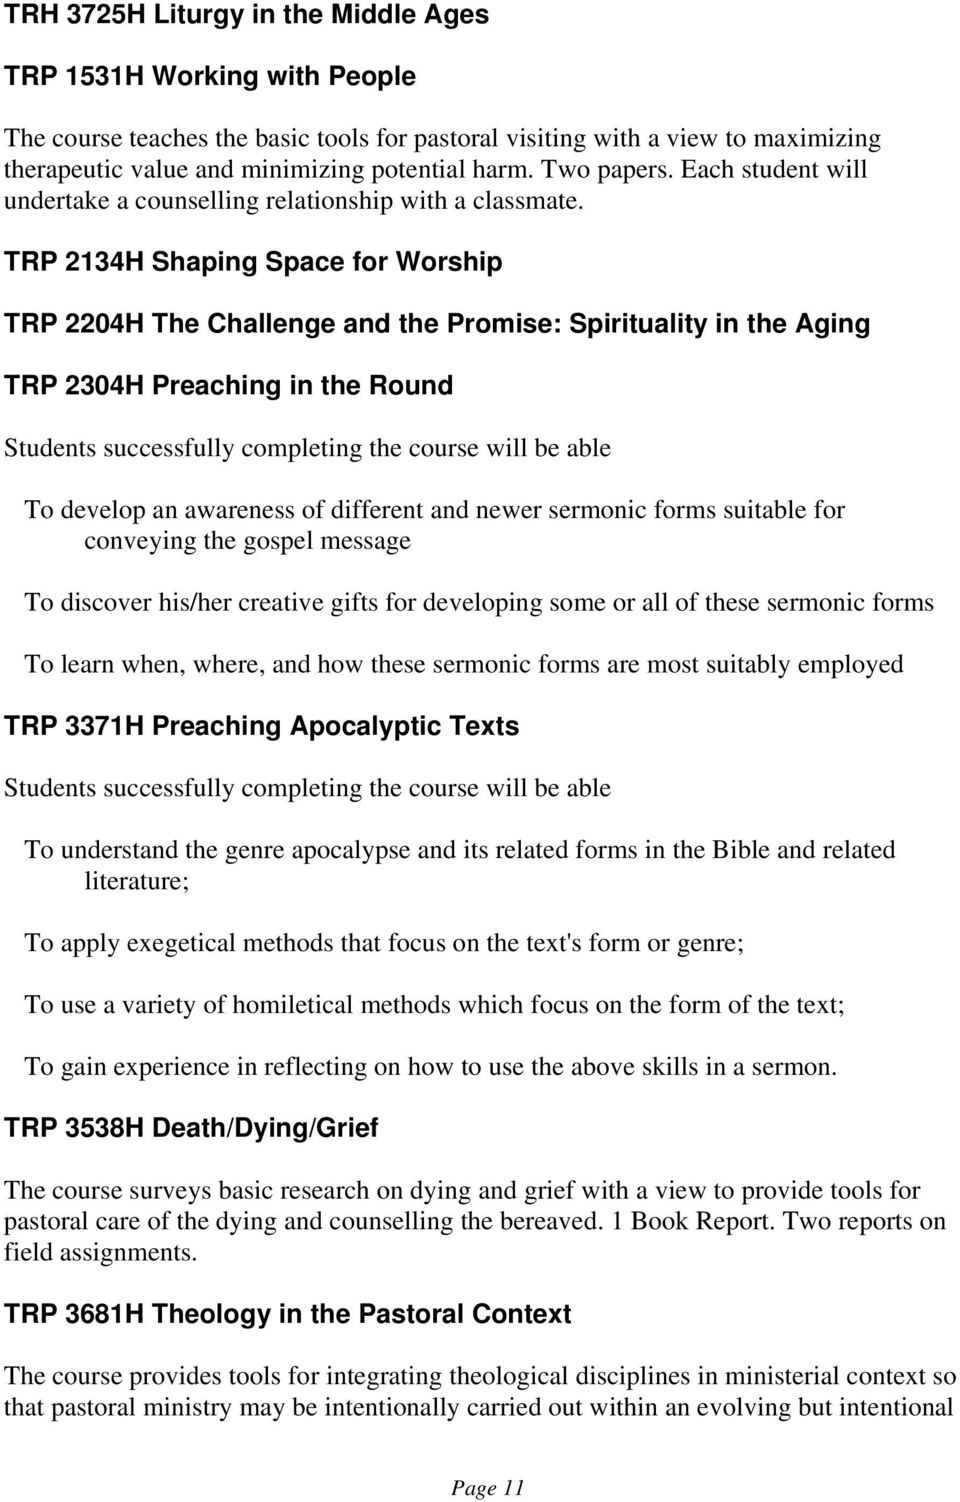 TRP 2134H Shaping Space for Worship TRP 2204H The Challenge and the Promise: Spirituality in the Aging TRP 2304H Preaching in the Round To develop an awareness of different and newer sermonic forms